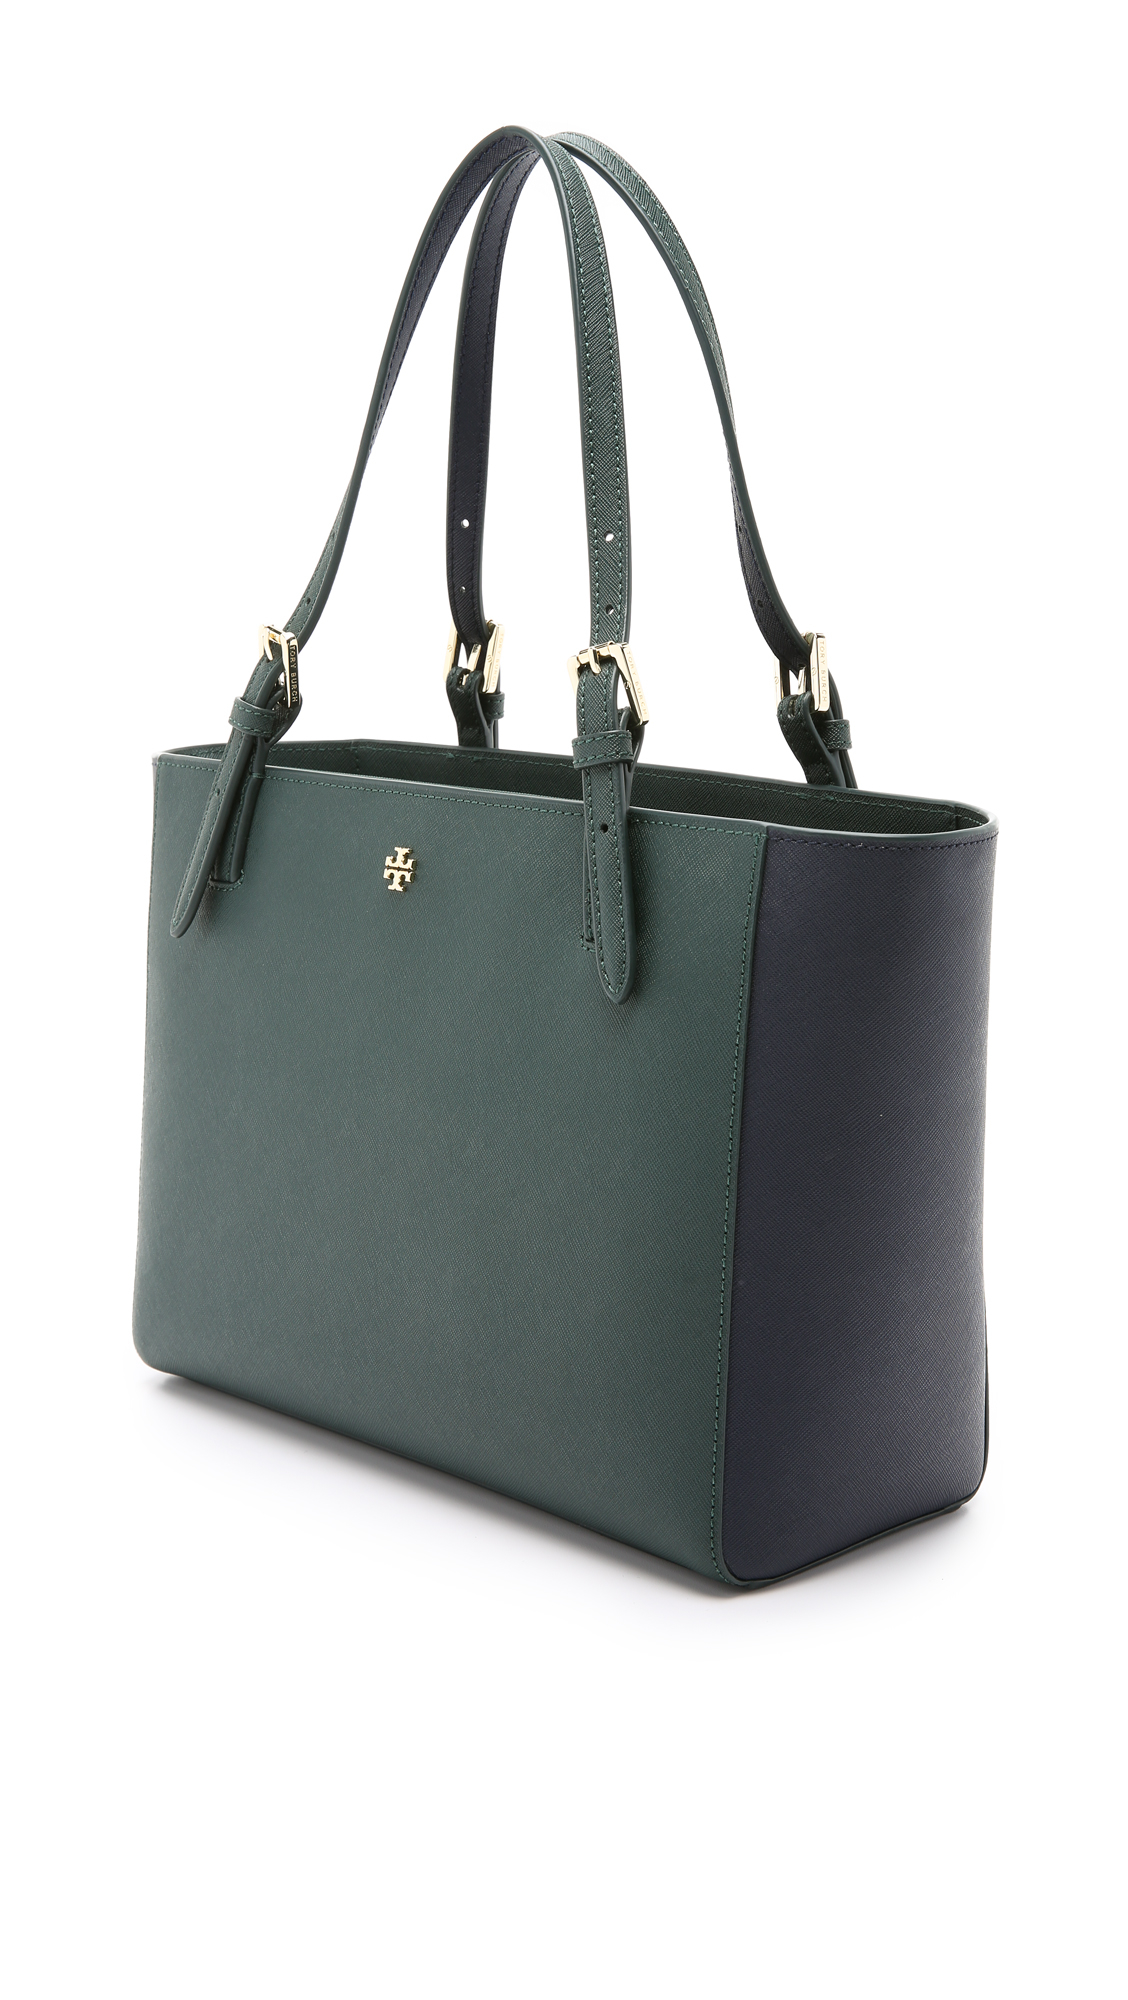 525d050677cf Lyst - Tory Burch York Small Buckle Tote - Jitney Green tory Navy in ...